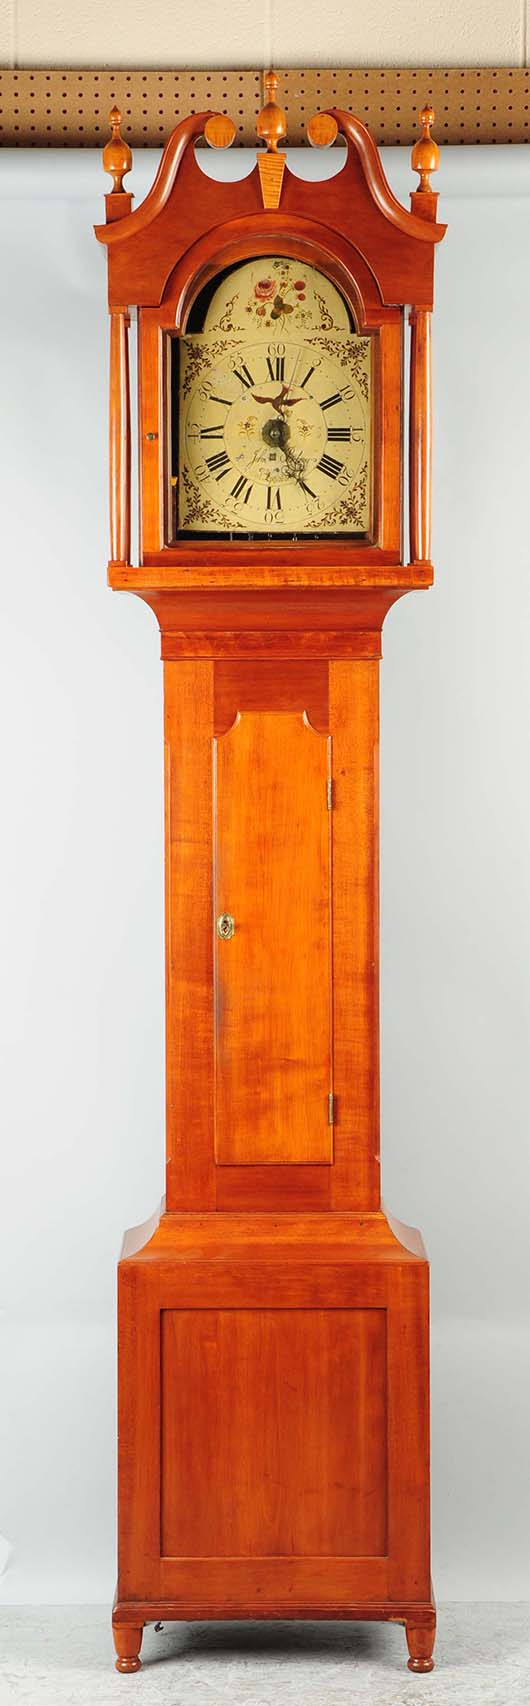 Circa 1880s Lancaster, Pa., tall-case clock with works marked 'John Belsner at Ephrata, Pa.,' in 92-inch-tall George Hoff case. Est. $3,000-$5,000. Morphy Auctions image